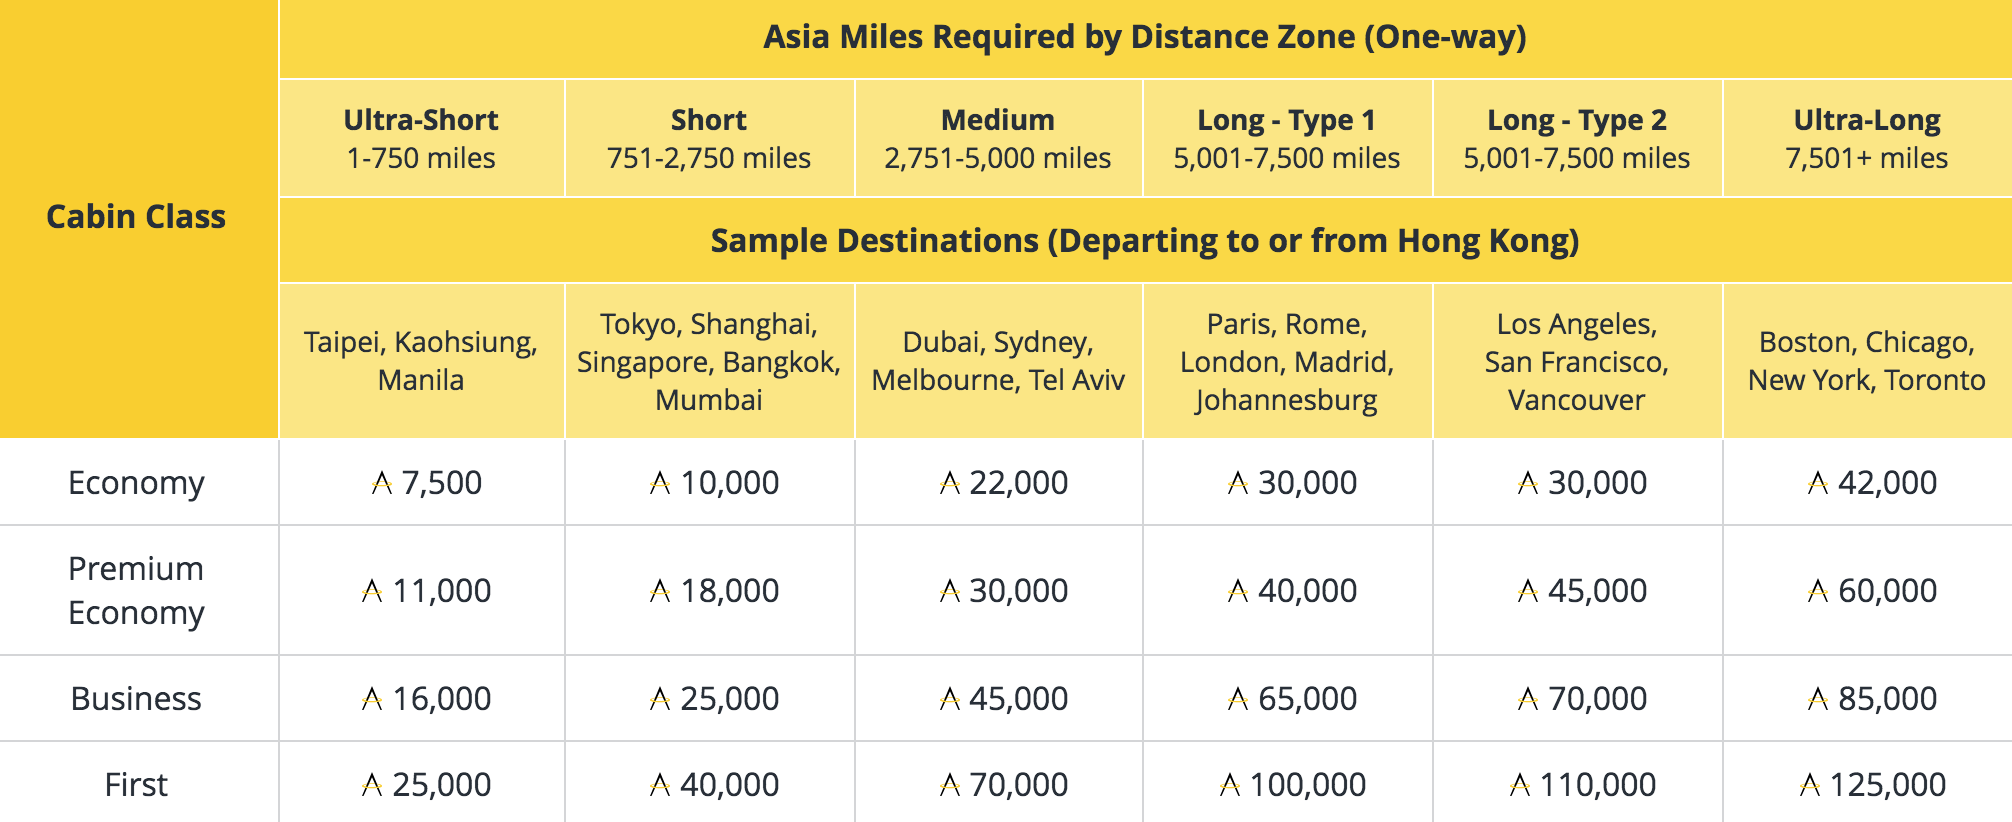 Cathay pacific devalues many asia miles awards makes other changes